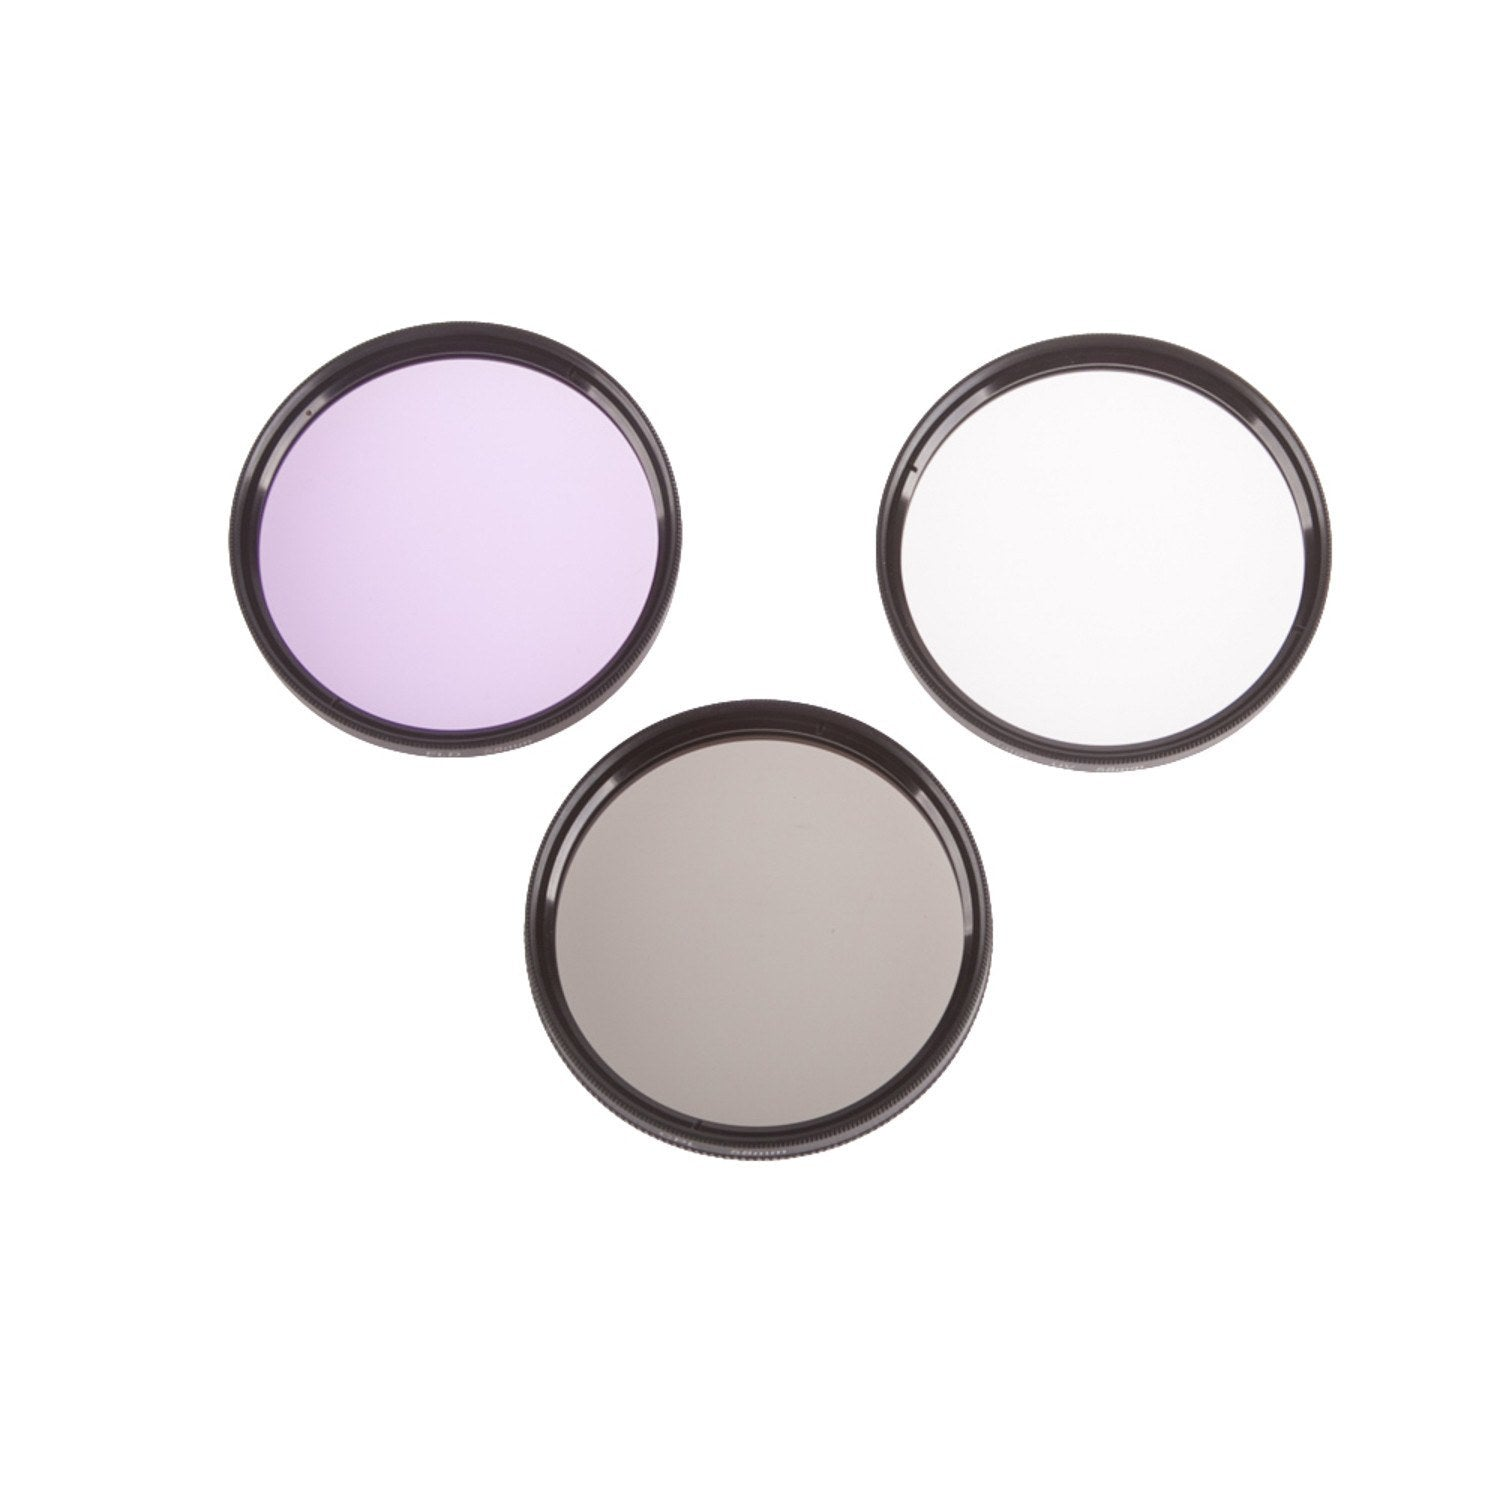 3 Filter Kit - UV, Polarizing, Fluorescent (Select Size) -  - 1